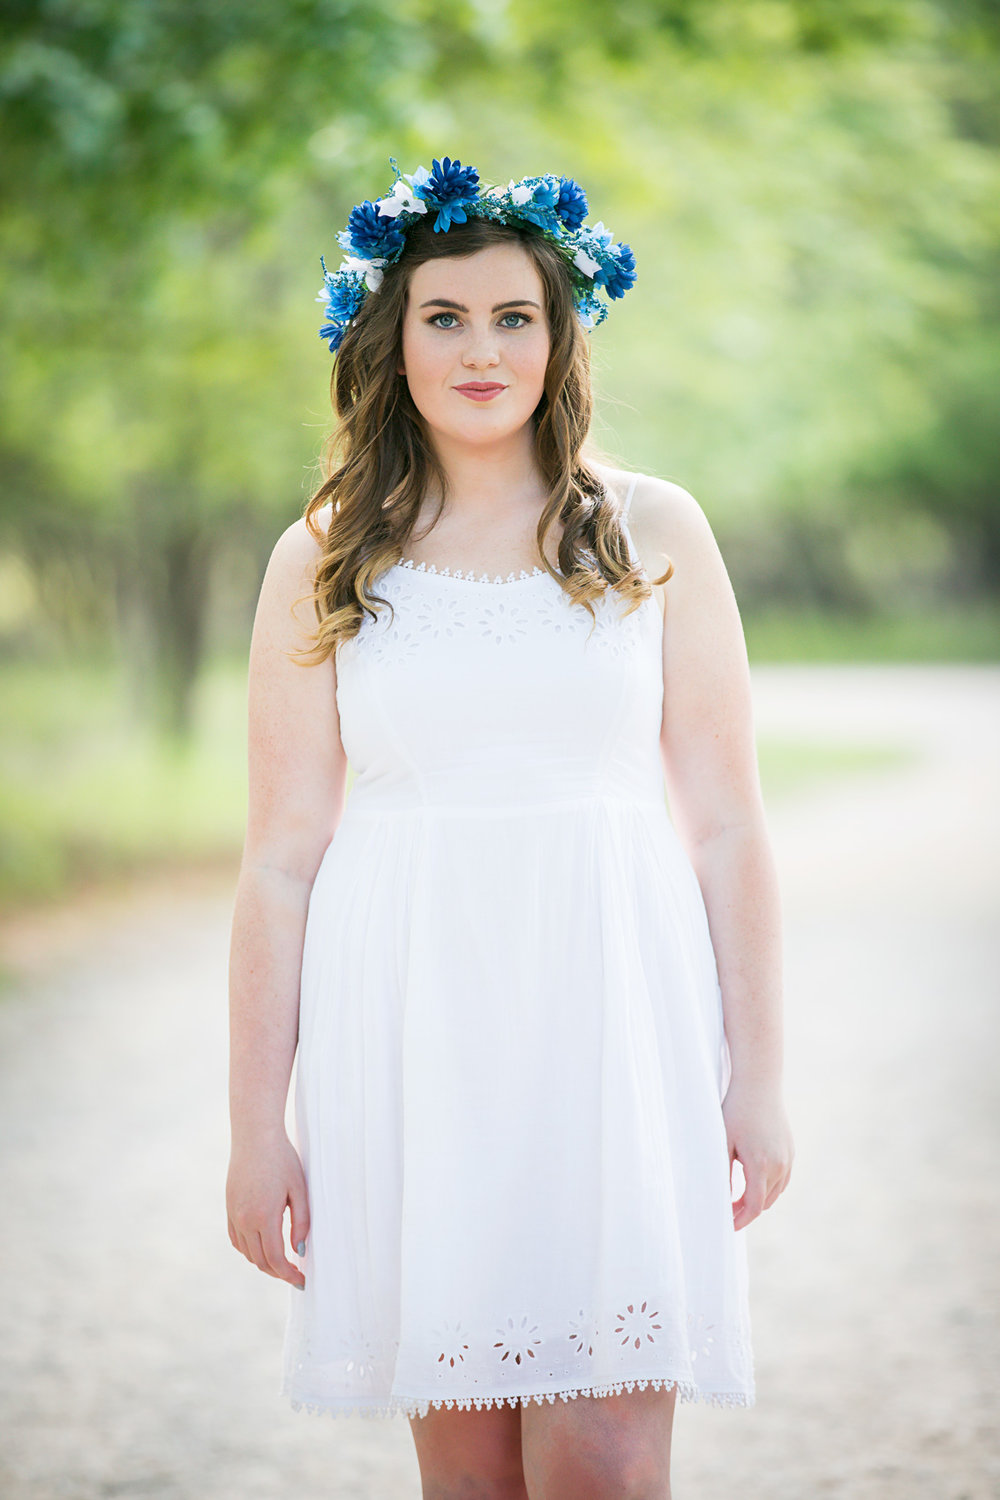 High school senior girl wearing white dress and a blue flower crown, standing on road, looking at camera at Martin Nature Park in OKC.